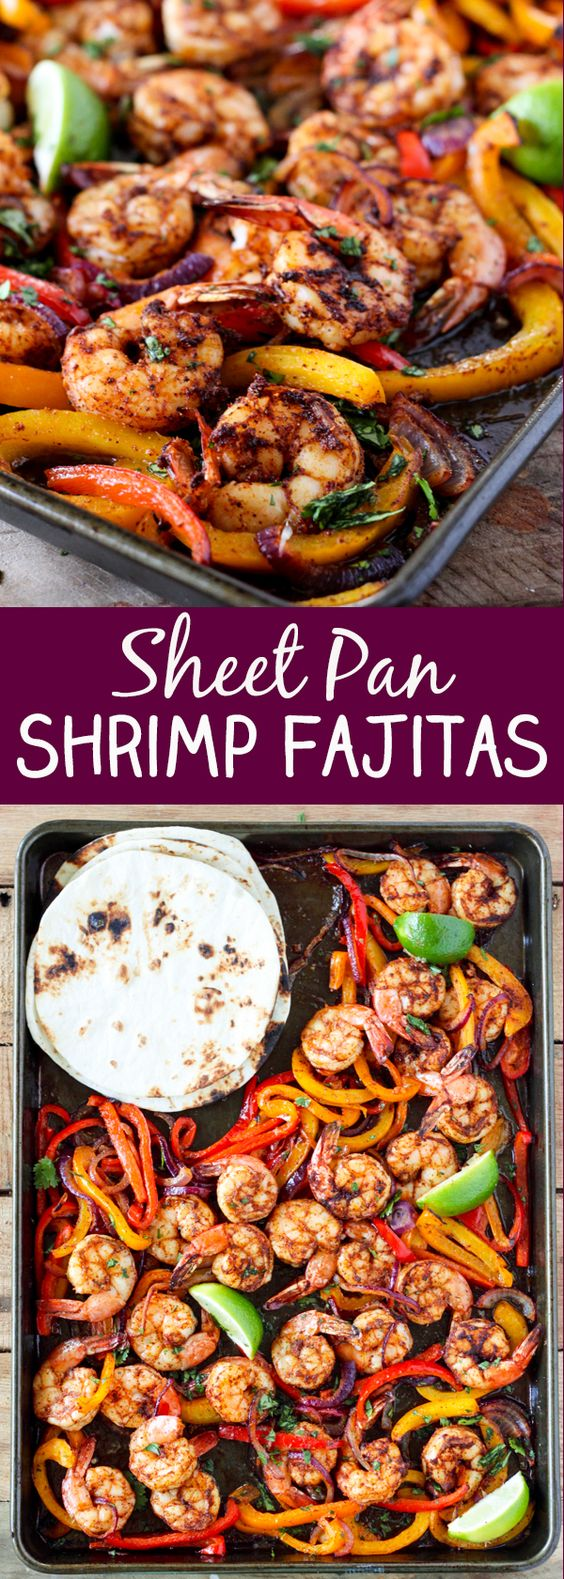 20 Minute One Sheet Pan Shrimp Fajitas Recipe via No. 2 Pencil - The BEST 30 Minute Meals Recipes - Easy, Quick and Delicious Family Friendly Lunch and Dinner Ideas #30minutemeals #30minutedinners #thirtyminutedinners #30minuterecipes #fastrecipes #easyrecipes #quickrecipes #mealprep